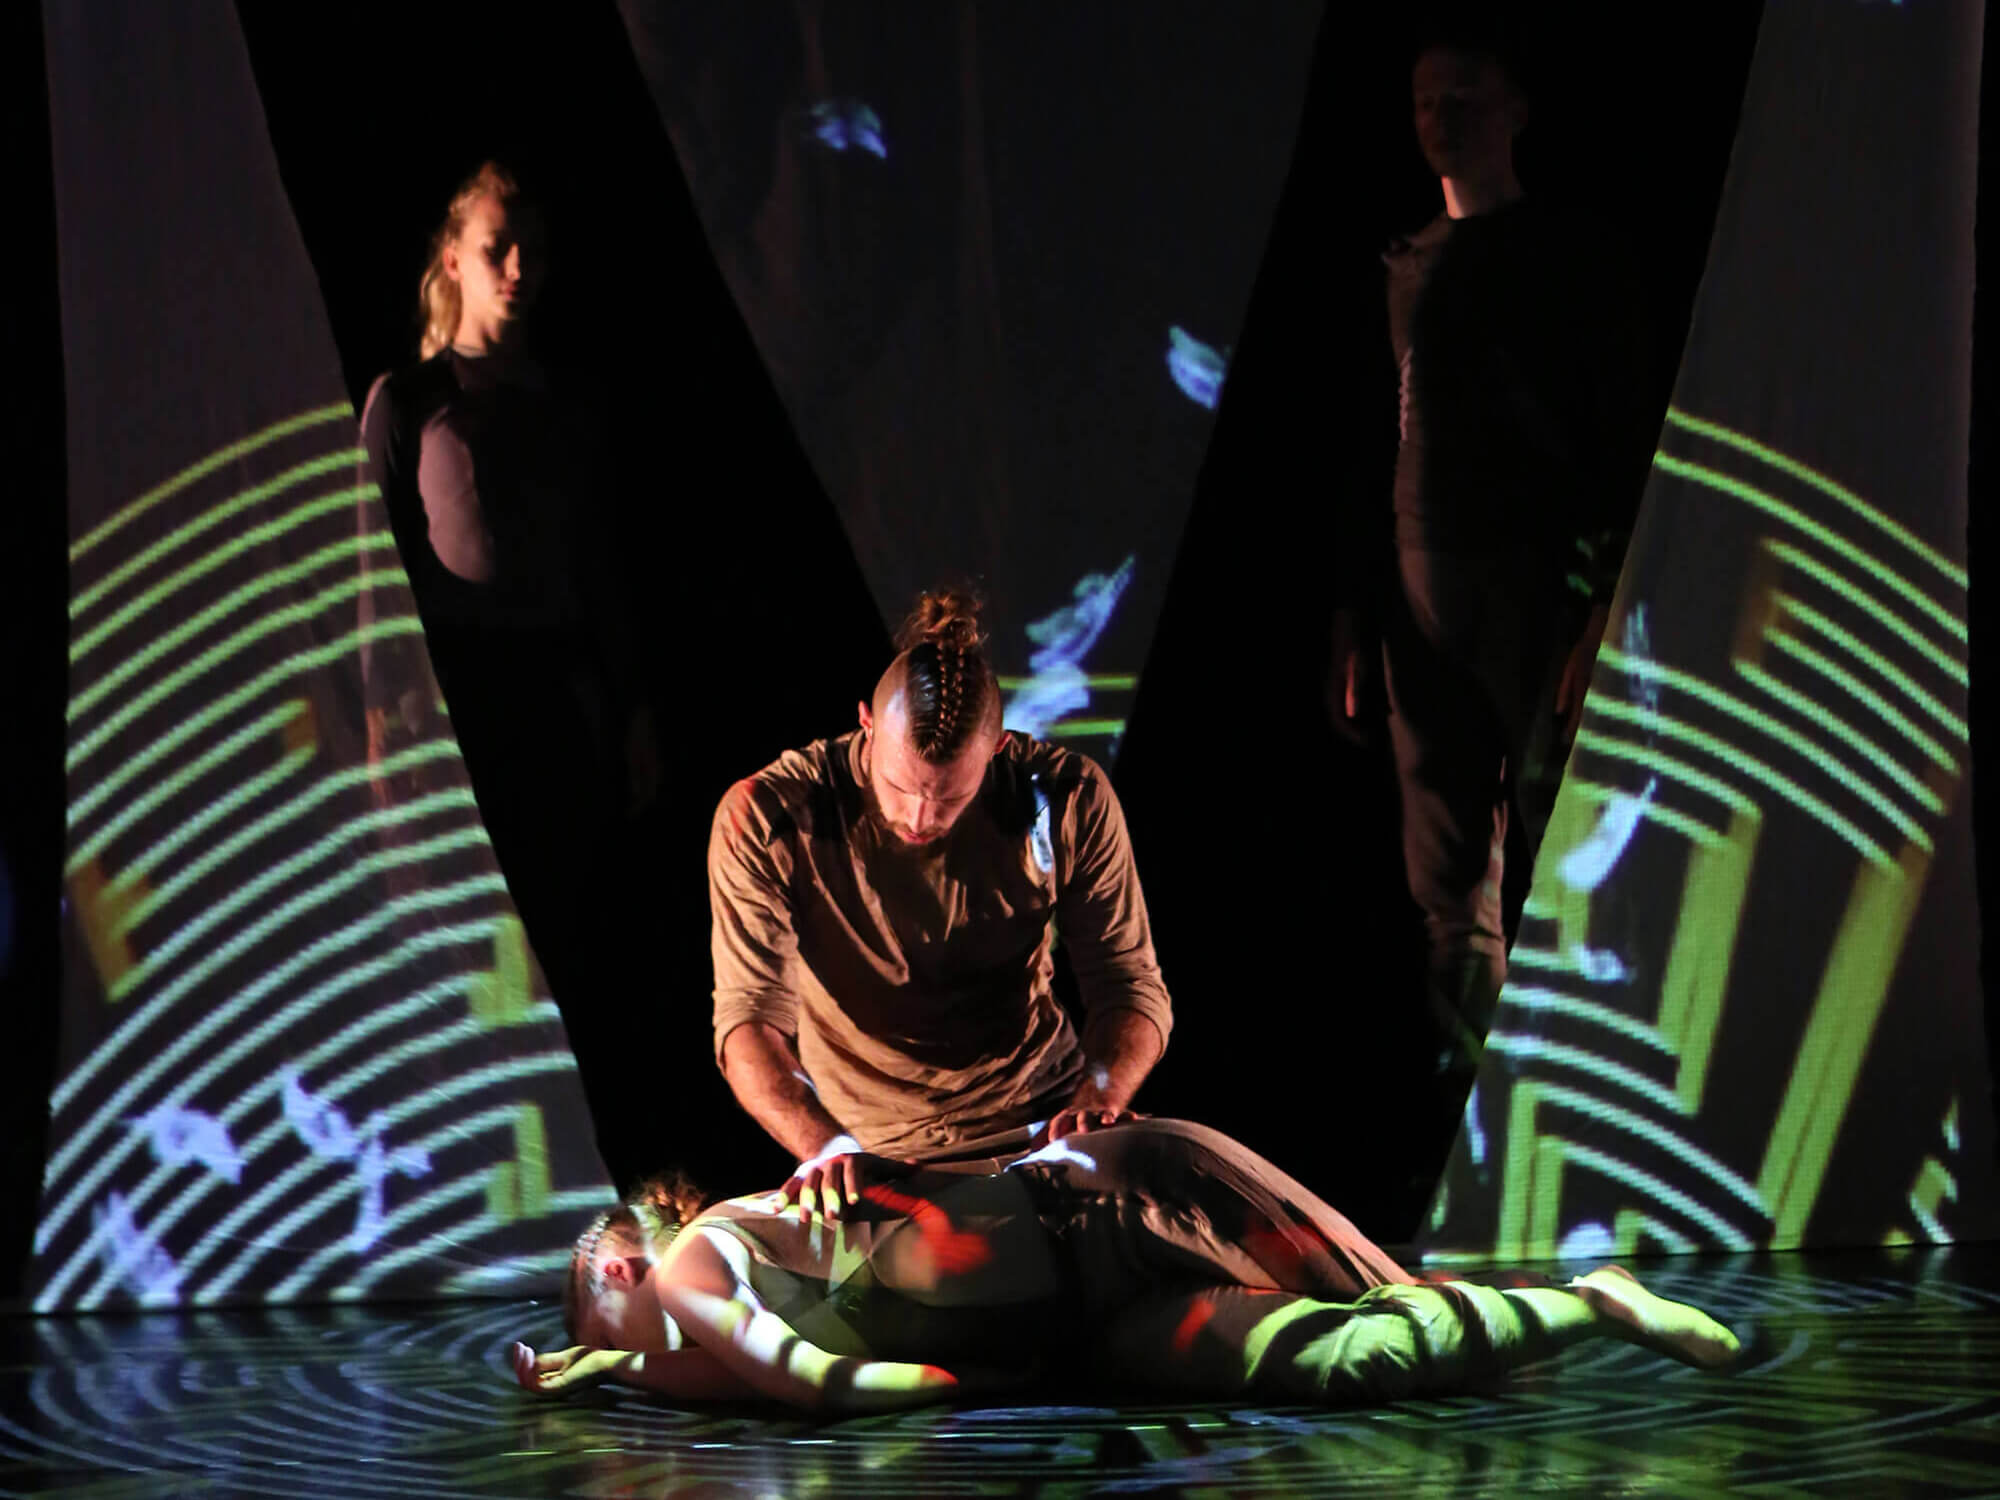 A person lies face down with another person sitting over them. Stage is lit with geometric shapes. Photo: Richard Richards